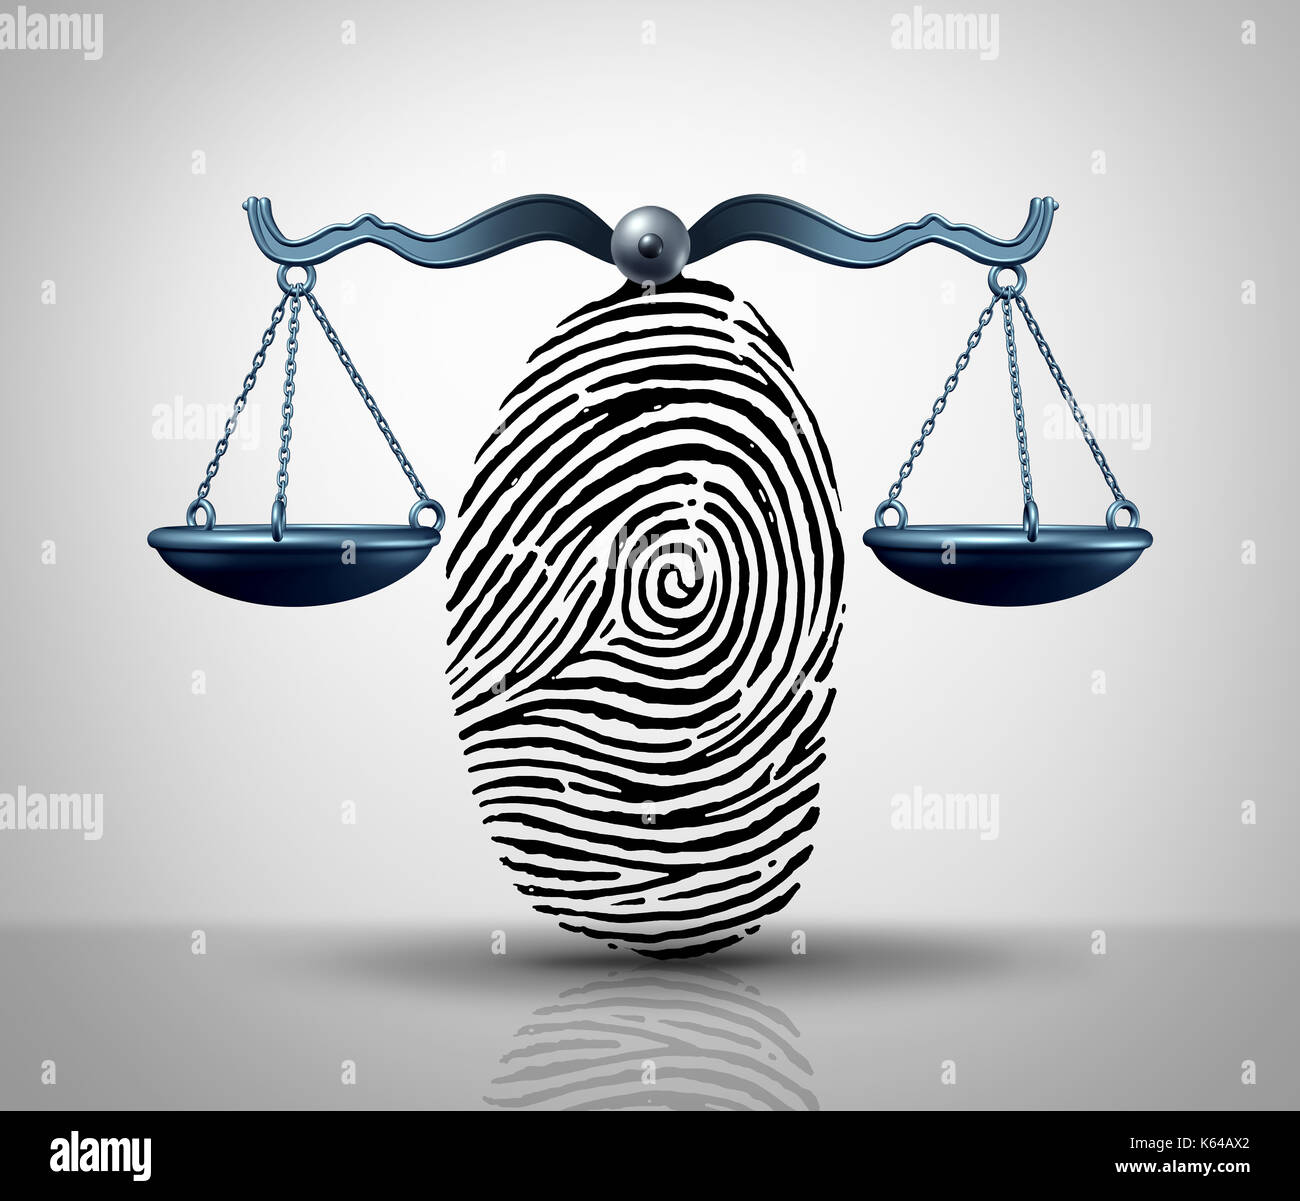 Identity law justice concept as a finger print or finger print shaped as a legal court scale as a lawyer or attorney services metaphor or hacking. - Stock Image